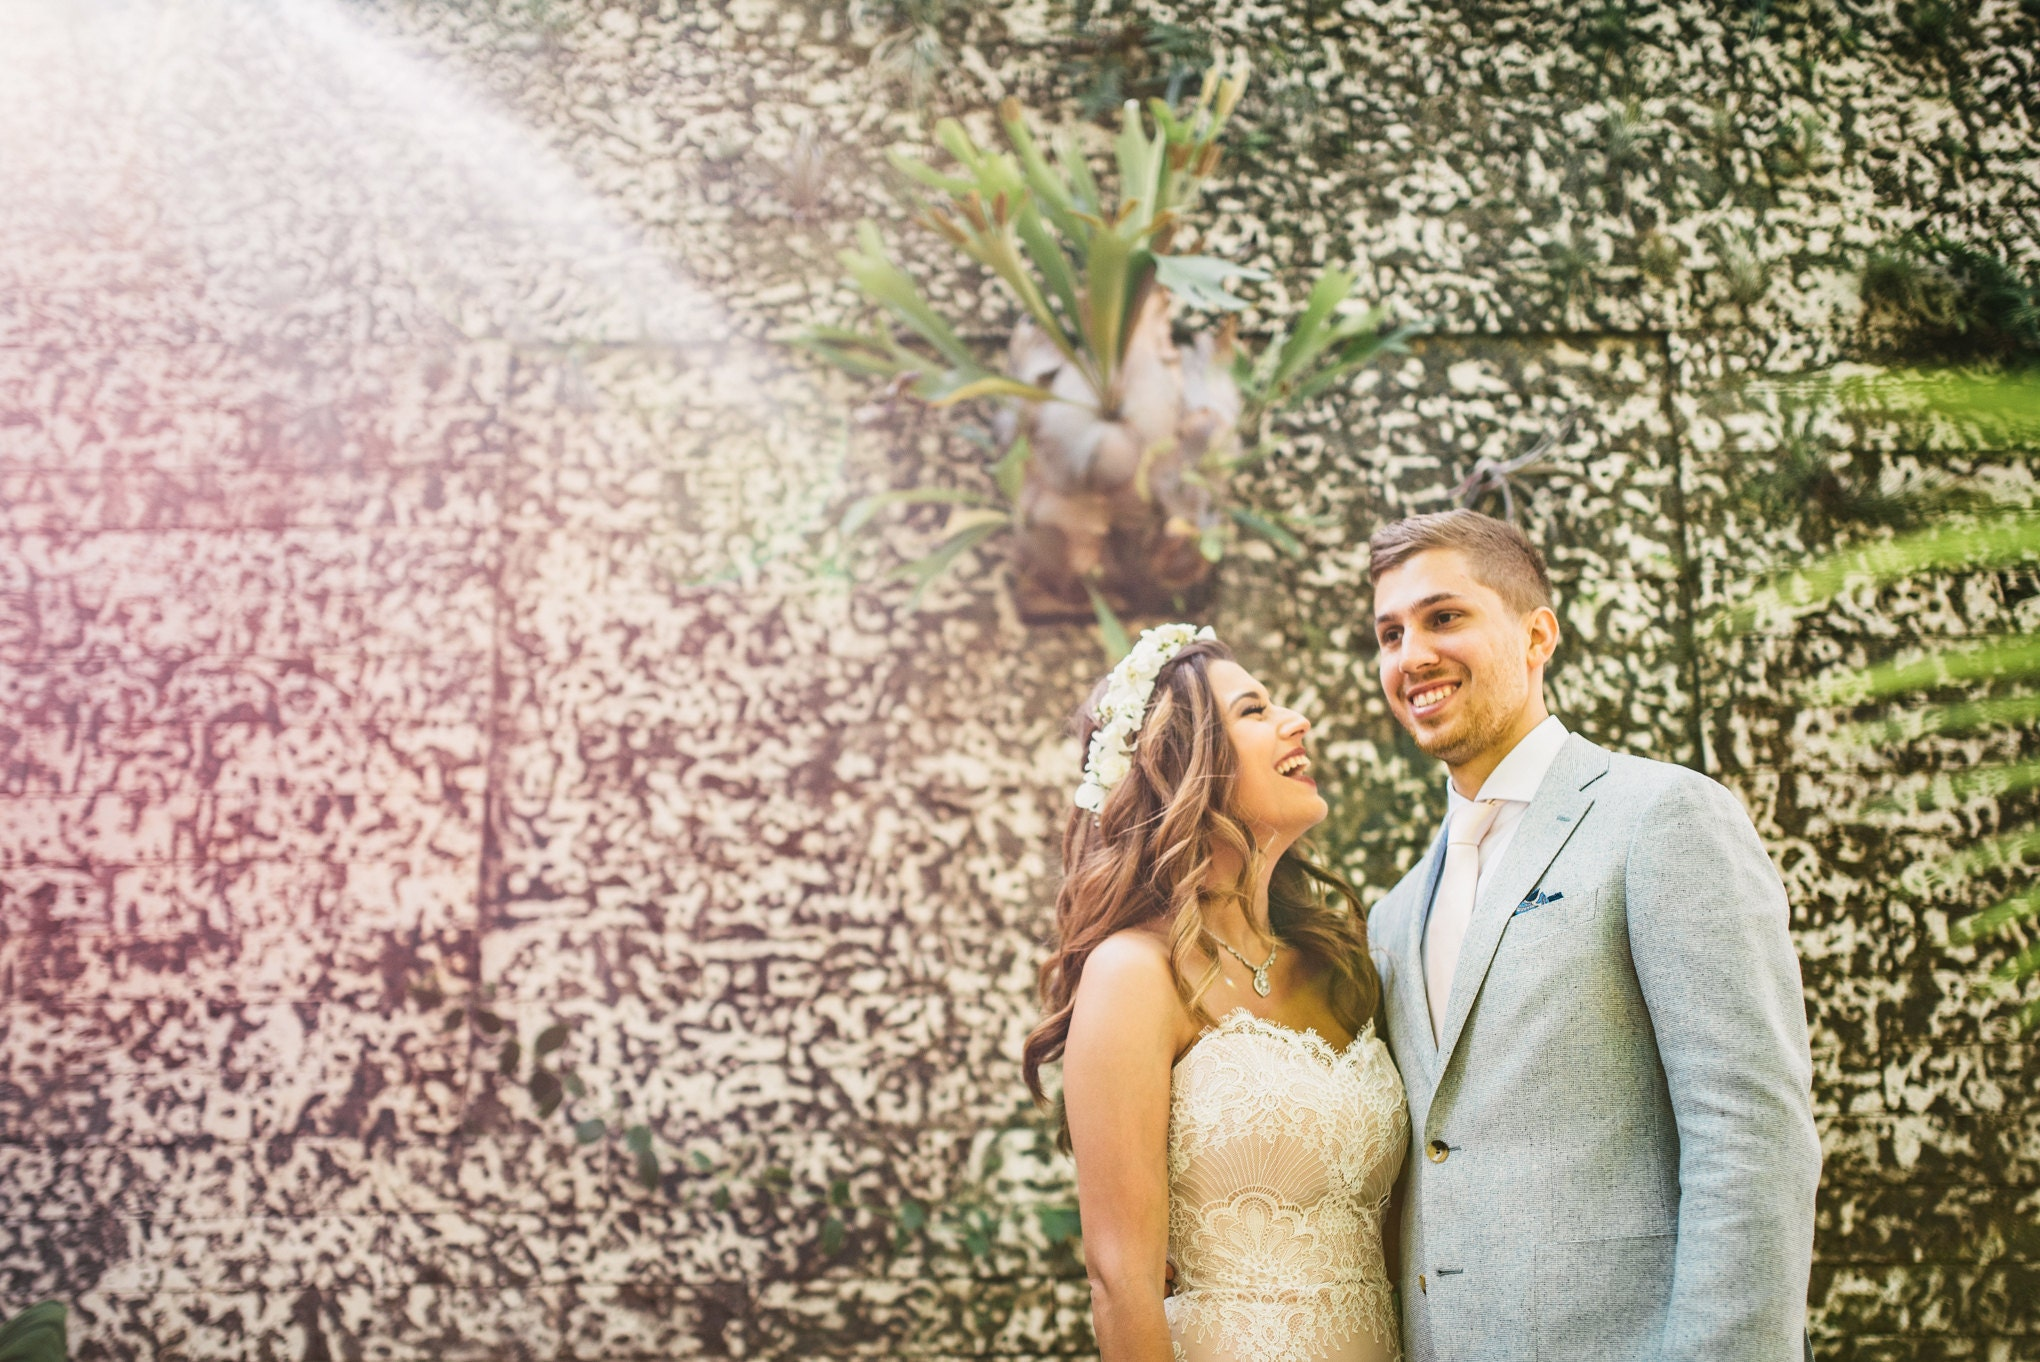 Event Planner: Busy Bees Events | Photography:Moriah Cuda